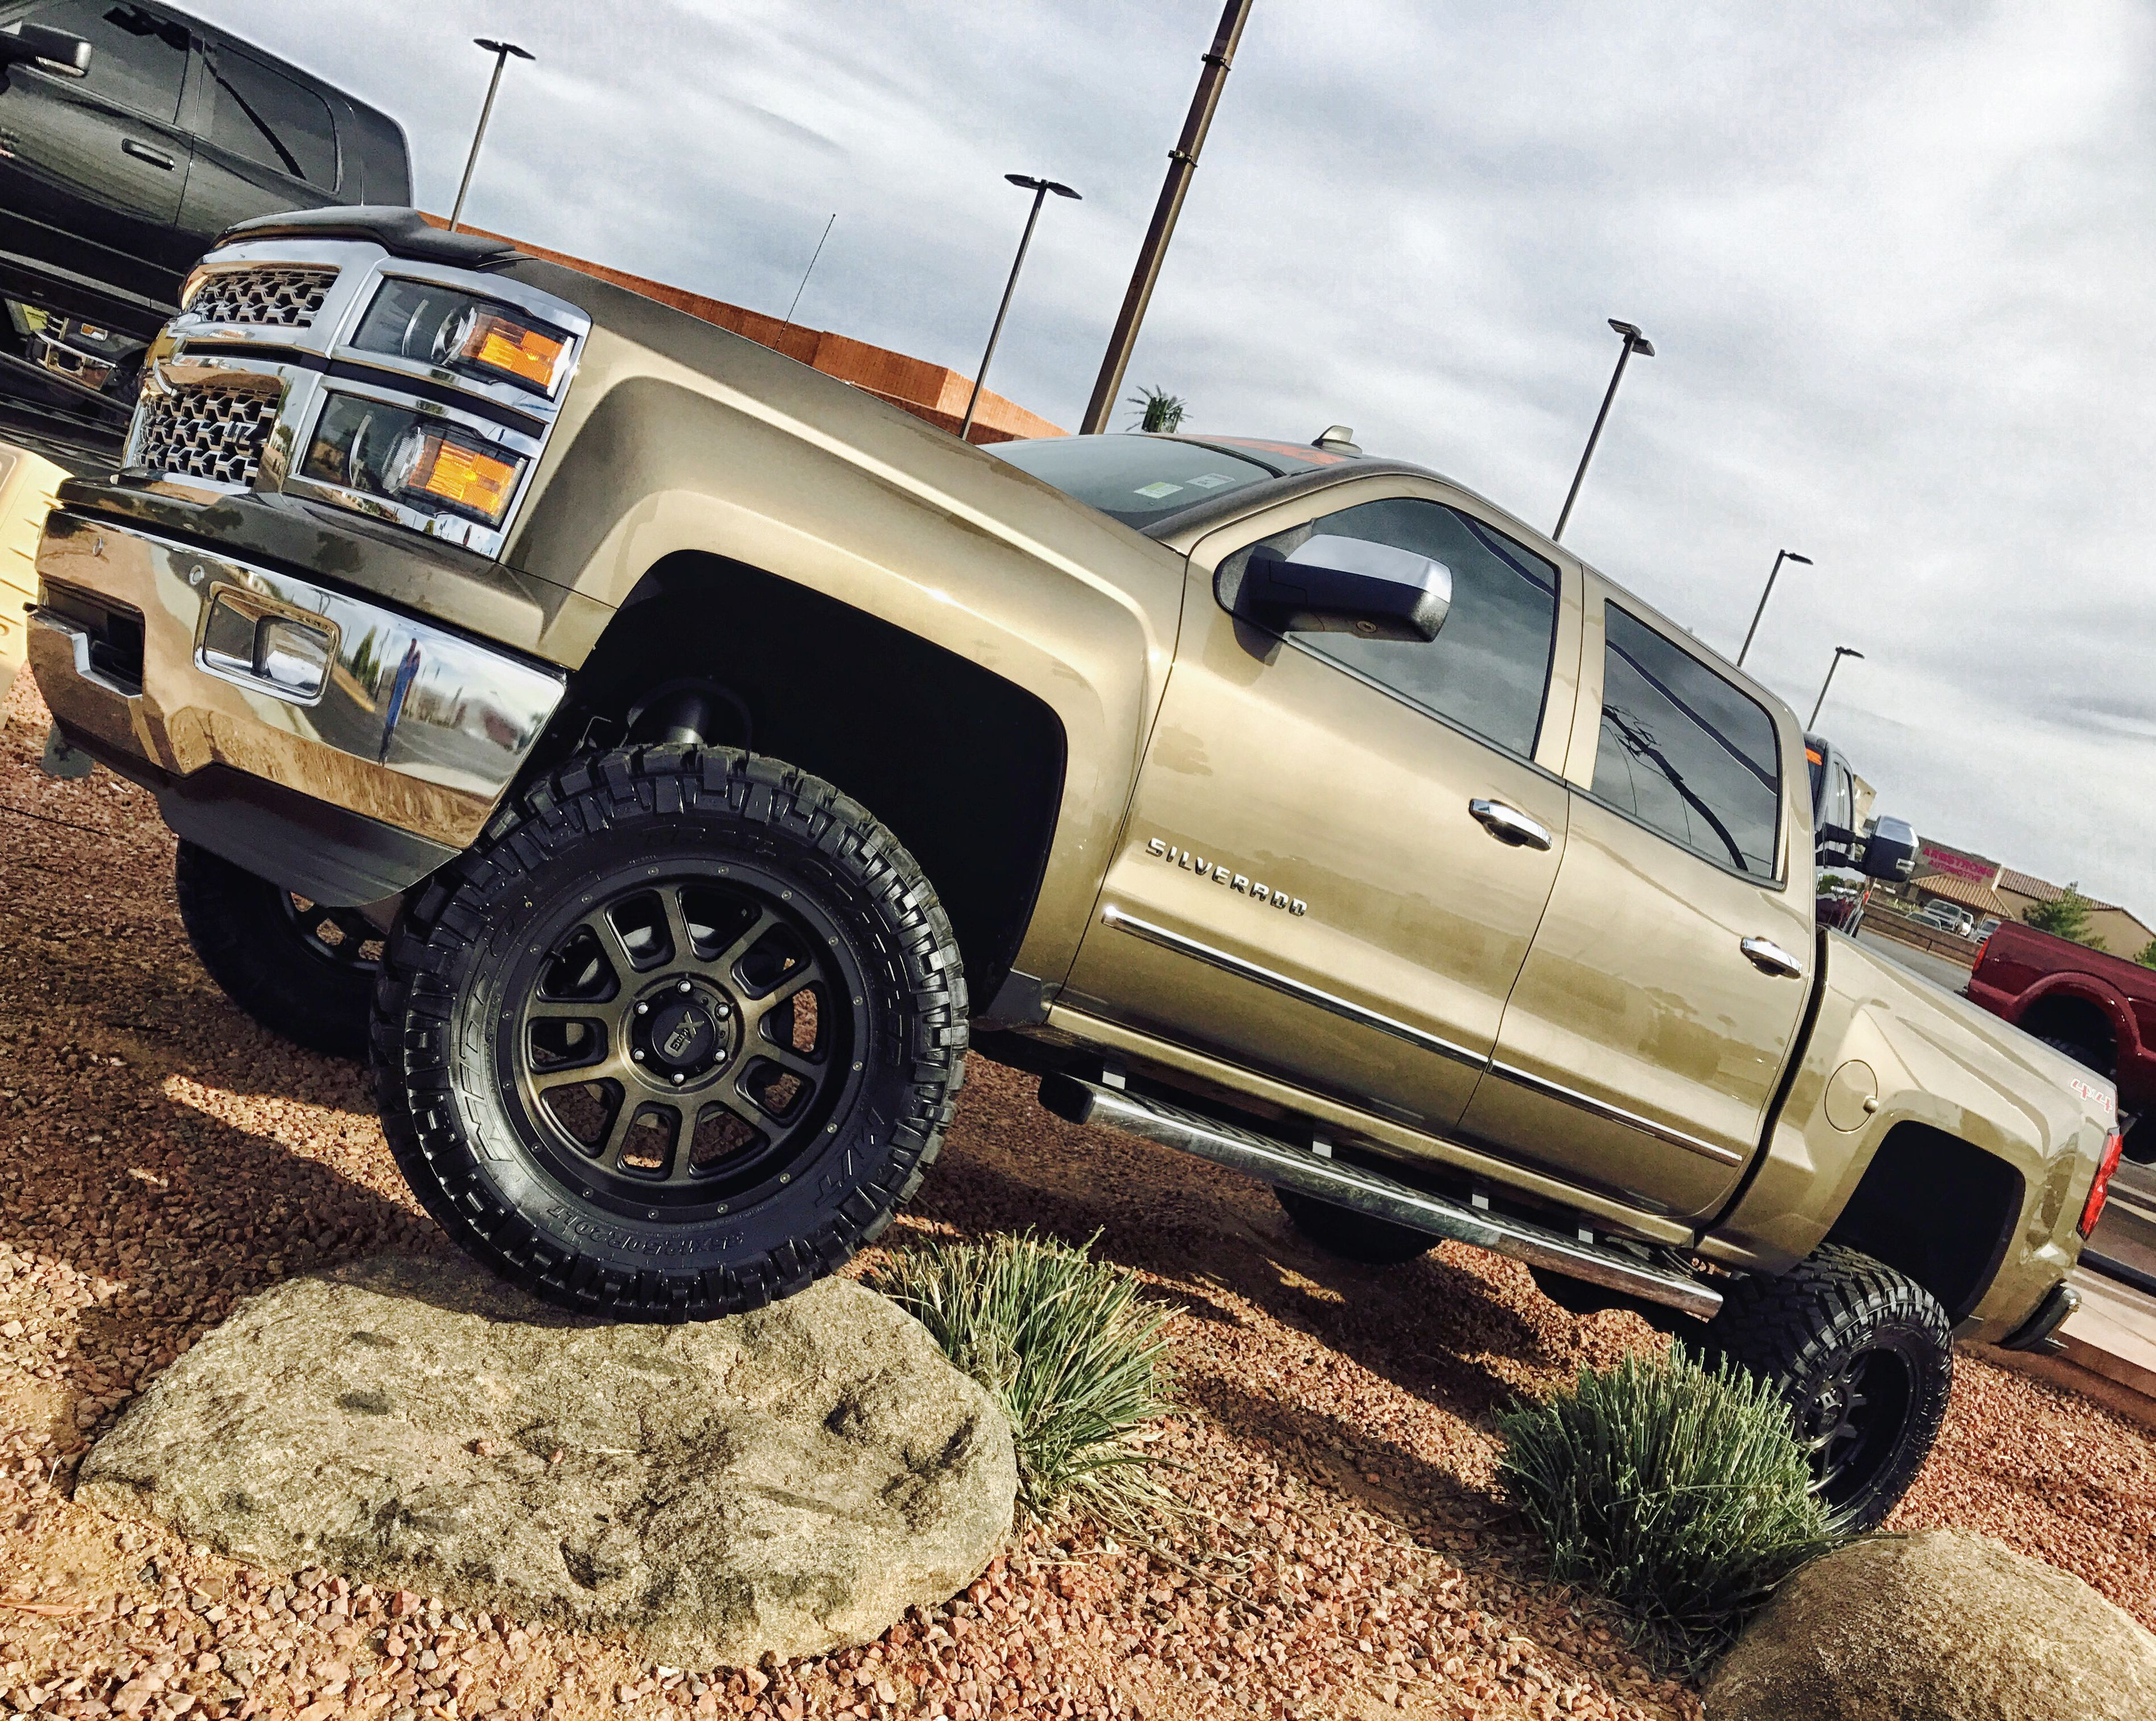 Lifted trucks built chevy 4x4 nitto tires kmc wheels pro comp offroad suspension